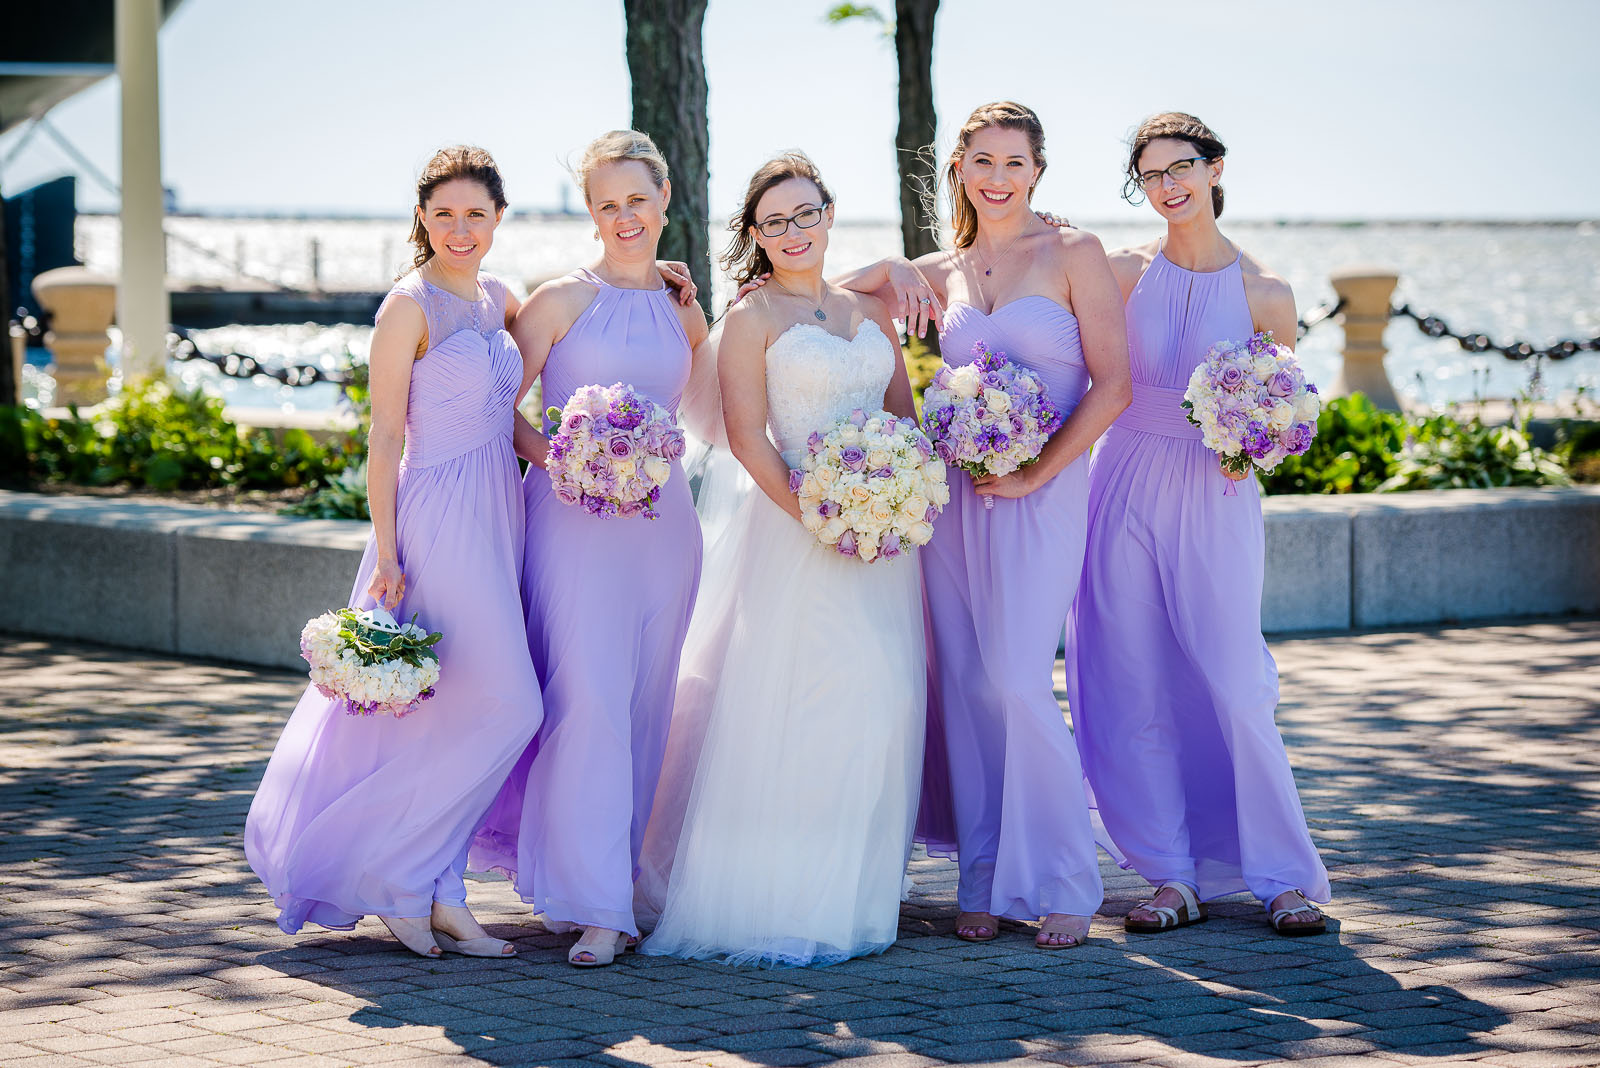 Eric_and_Christy_Photography_Blog_Julie_Adam_Wedding-18